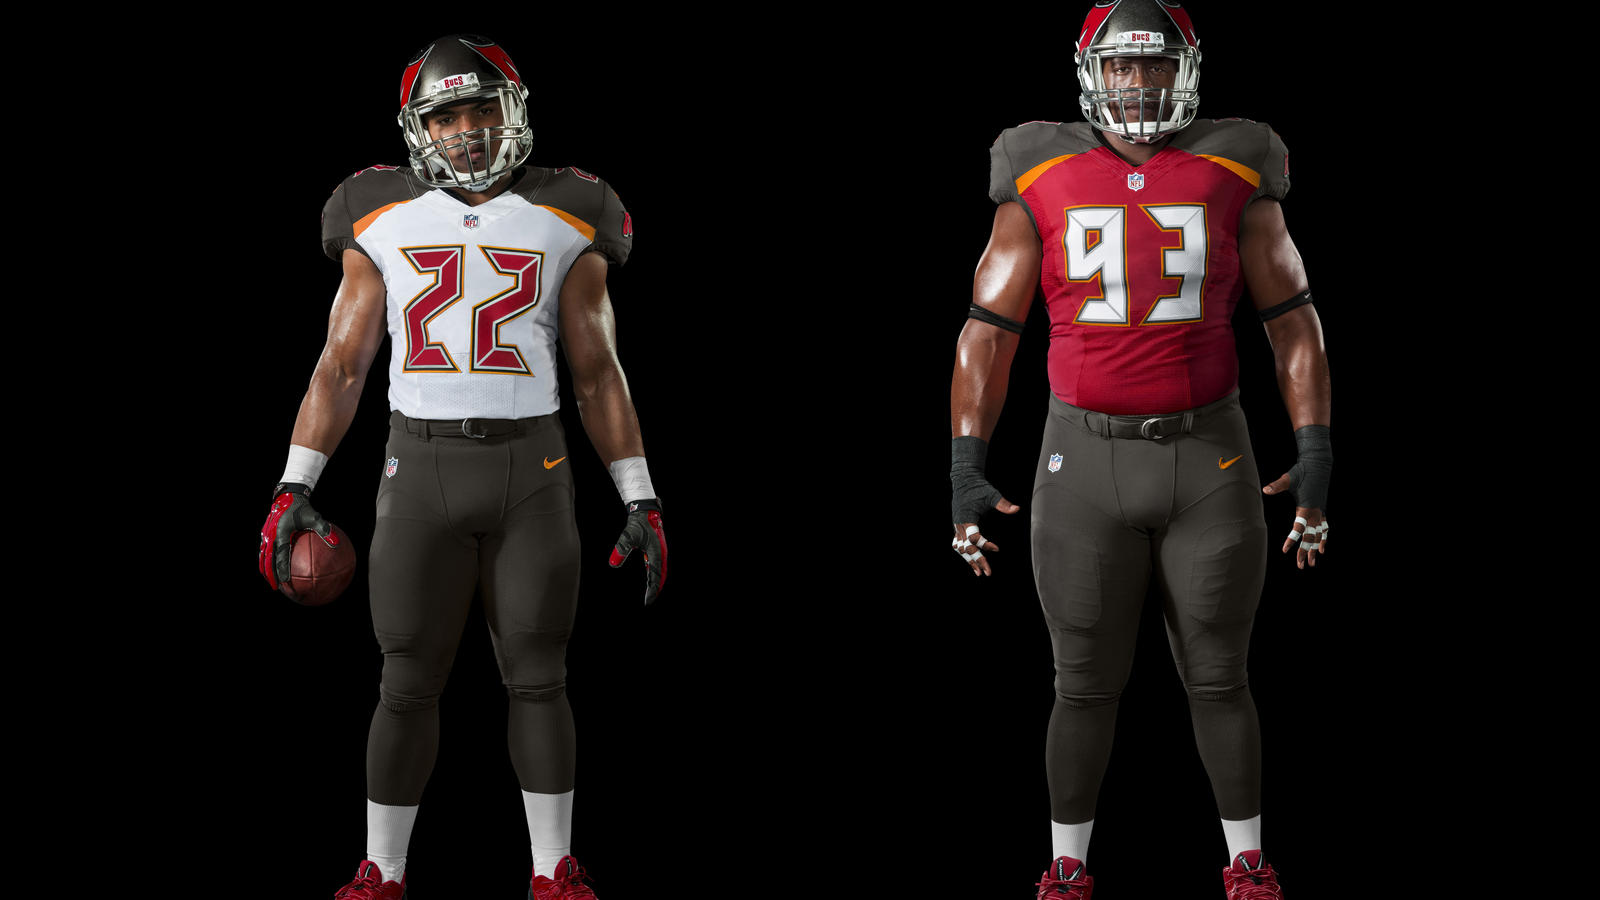 1e1e3ac53f1b Tampa Bay Buccaneers and Nike Unveil New Uniform Design for 2014 ...